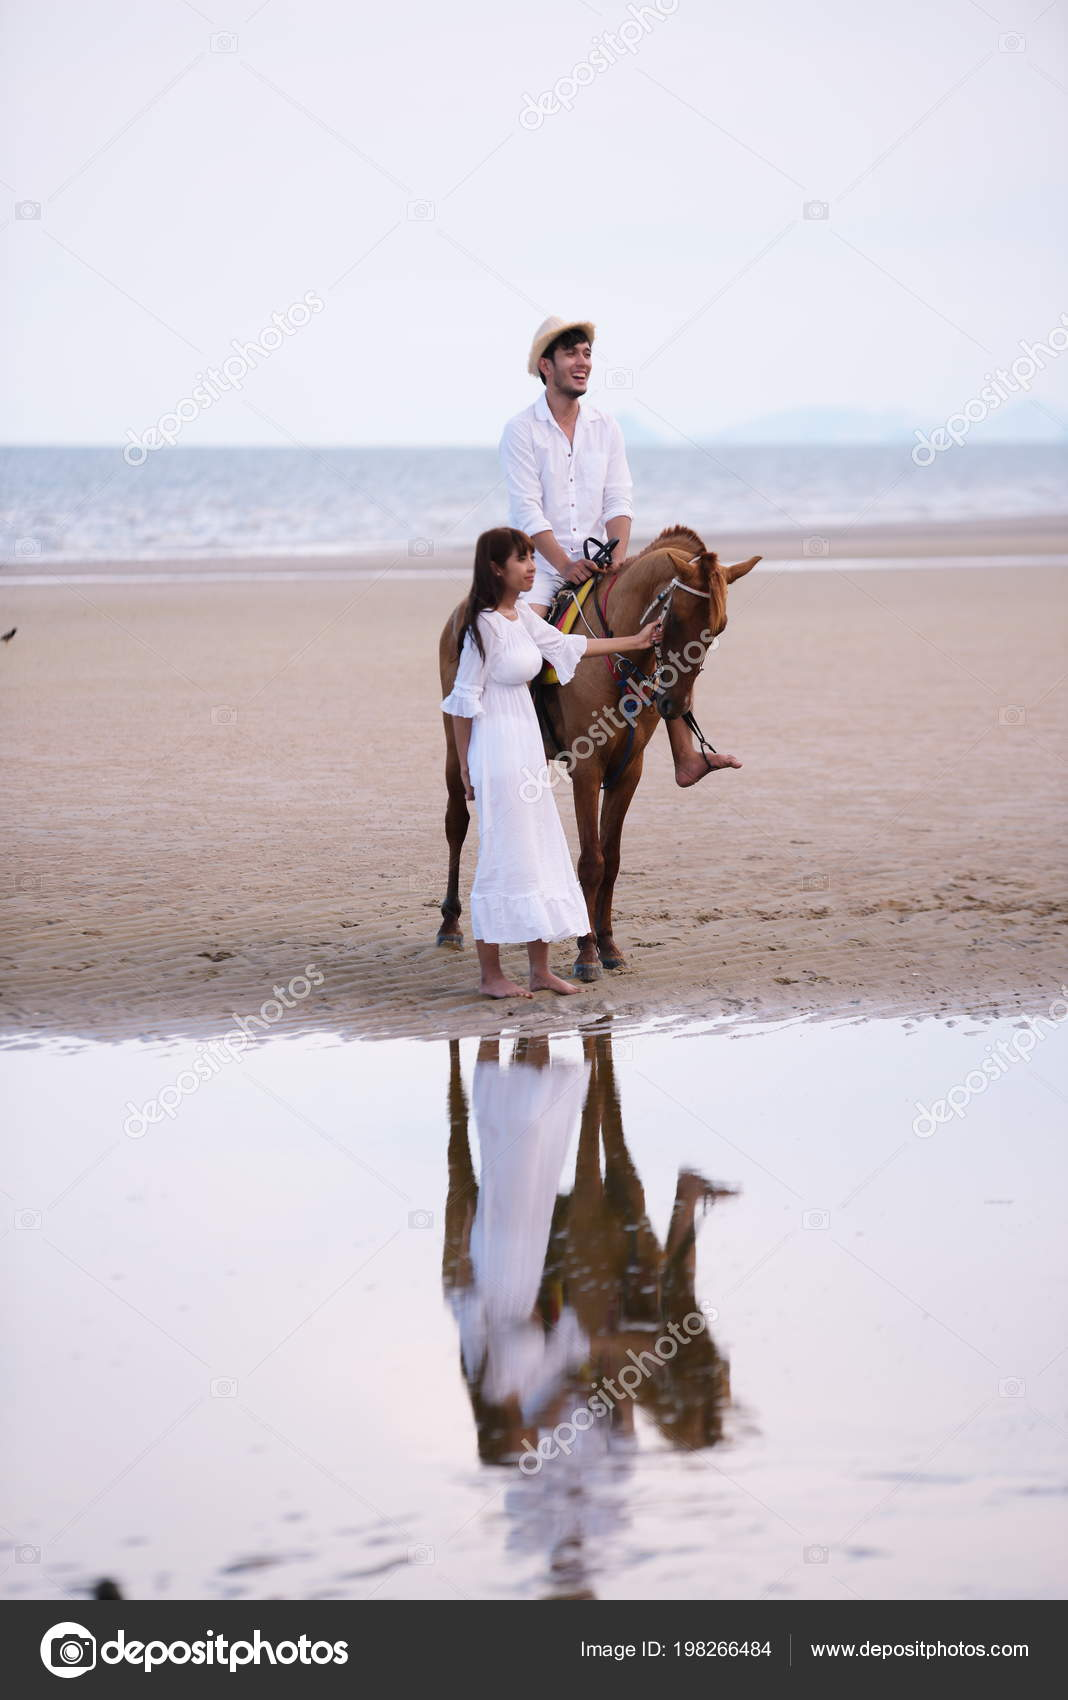 Romantic Couple Horse Riding Beach Afternoon Sweet Holiday Stock Photo C Tharathiponsri Gmail Com 198266484